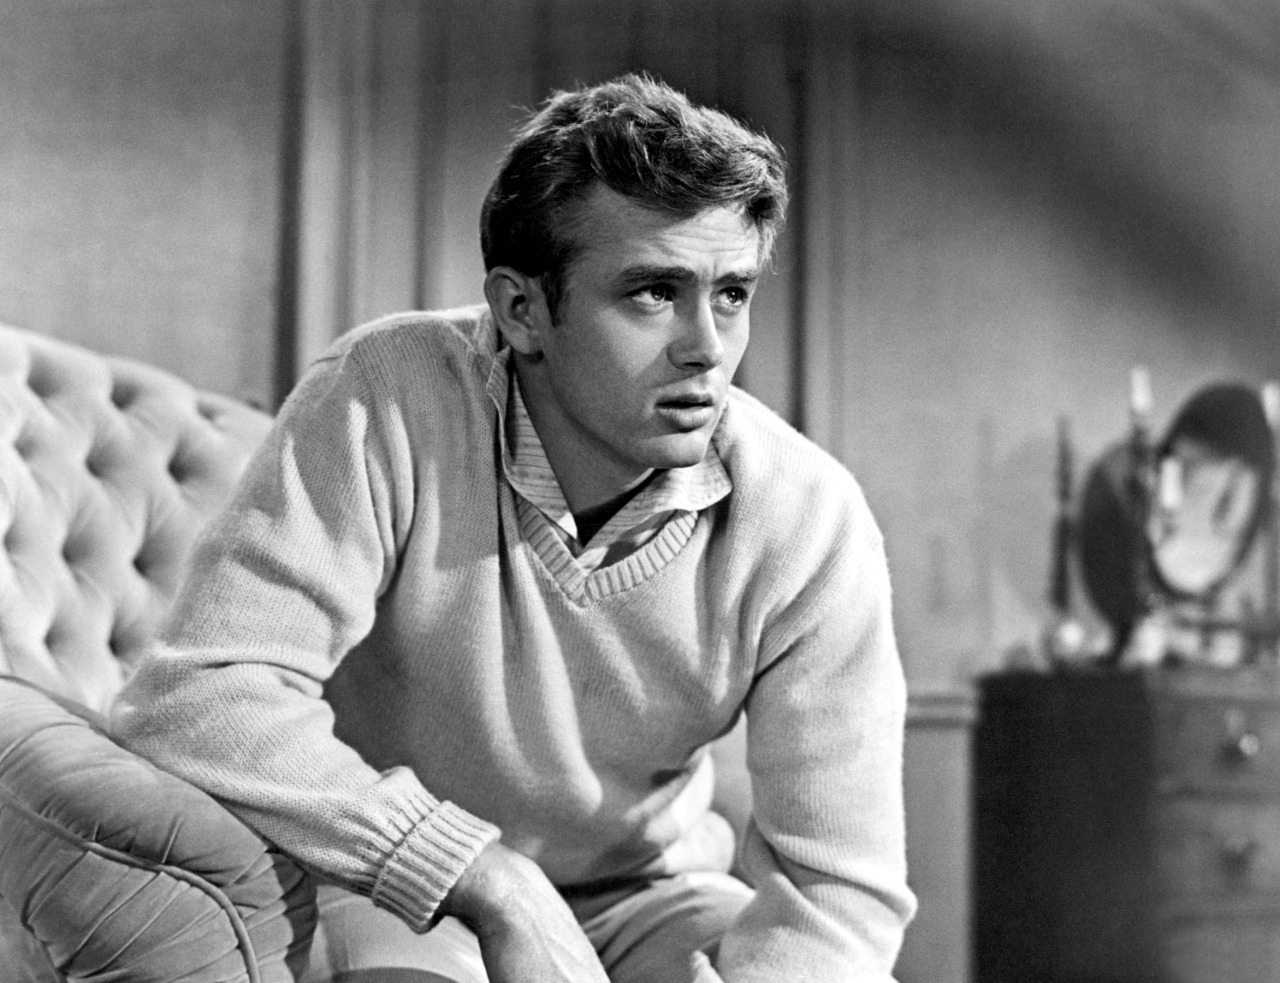 10 Ways to Pay Tribute to James Dean Today  59 years ago today, a car accident between a Porsche 550 Spyder and Ford Tudor established a pop-culture mile marker; at approximately 5:45 PM on a California highway, the world lost James Dean. However, in return we came out of the dust with a counterculture icon who symbolizes badassery and rock n roll. Here are our top 10 ways to let your inner rebel out to play.  1. Rock the Jim Stark look. This video will show you how to recreate the legendary coif http://youtu.be/DgfYu7GqIs8. Throw on a leather jacket and cuffed jeans. If DIY isn't your speed, let the professionals handle it.  Get the cut at:  Shorty's Barbershop 755N Fairfax Ave West Hollywood, CA 90046 (323) 297-0554  Get the duds at:  American Vintage  7575 Melrose Ave Los Angeles, CA (323) 944-0640   2. Take a scenic drive on Mulholland or PCH. Jay Leno is an expert on this subject; let him drive you through it: http://youtu.be/T6yUSQ9_f8A   3. Visit the Peterson; it's one of the largest automotive museums in the world.  Peterson Automotive Museum 6060 Wilshire Blvd, Los Angeles, CA 90036 (323) 930-2277   4. Watch a James Dean film; he was a movie star after all. We have a few recommendations, two of which don't actually star James Dean; a biopic where James Franco plays James Dean, and the other is like a 93-minute, tripped-out love song to the mysterious actor.   Rebel Without A Cause (1955) A rebellious young man with a troubled past comes to a new town, finding friends and enemies. The infamous fight scene at the Griffith Observatory is in this movie. http://youtu.be/wXRgAXU1-T4  James Dean (2001) This made-for-tv biopic stars James Franco as James Dean. In our opinion it's the best James Dean biopic out there. It's an HBO movie but this one is especially hard to find http://www.fandango.com/movie-trailer/jamesdean-trailer/33857  Joshua Tree, 1951: A Portrait of James Dean (2012) It isn't exactly a biopic but do yourself a favor and see this, the imagery is s